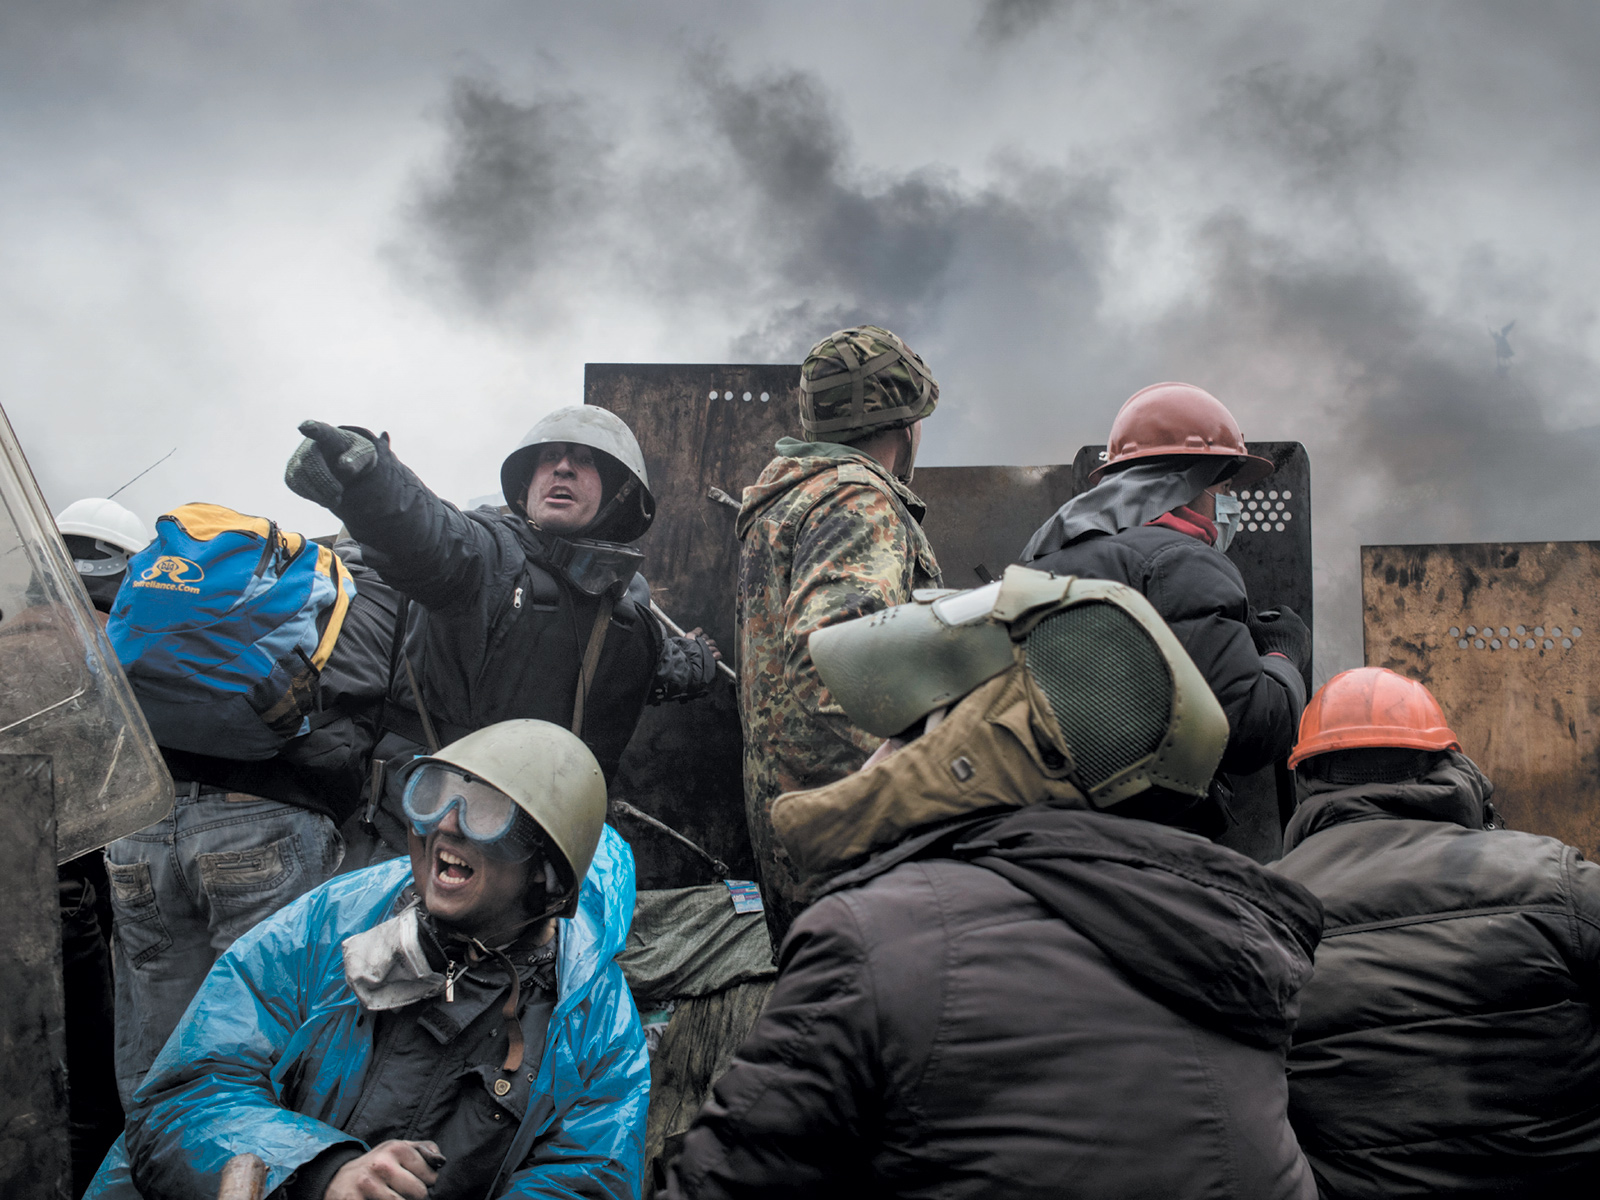 Unarmed anti-government protesters being fired upon by snipers, Maidan Square, Kiev, February 2014